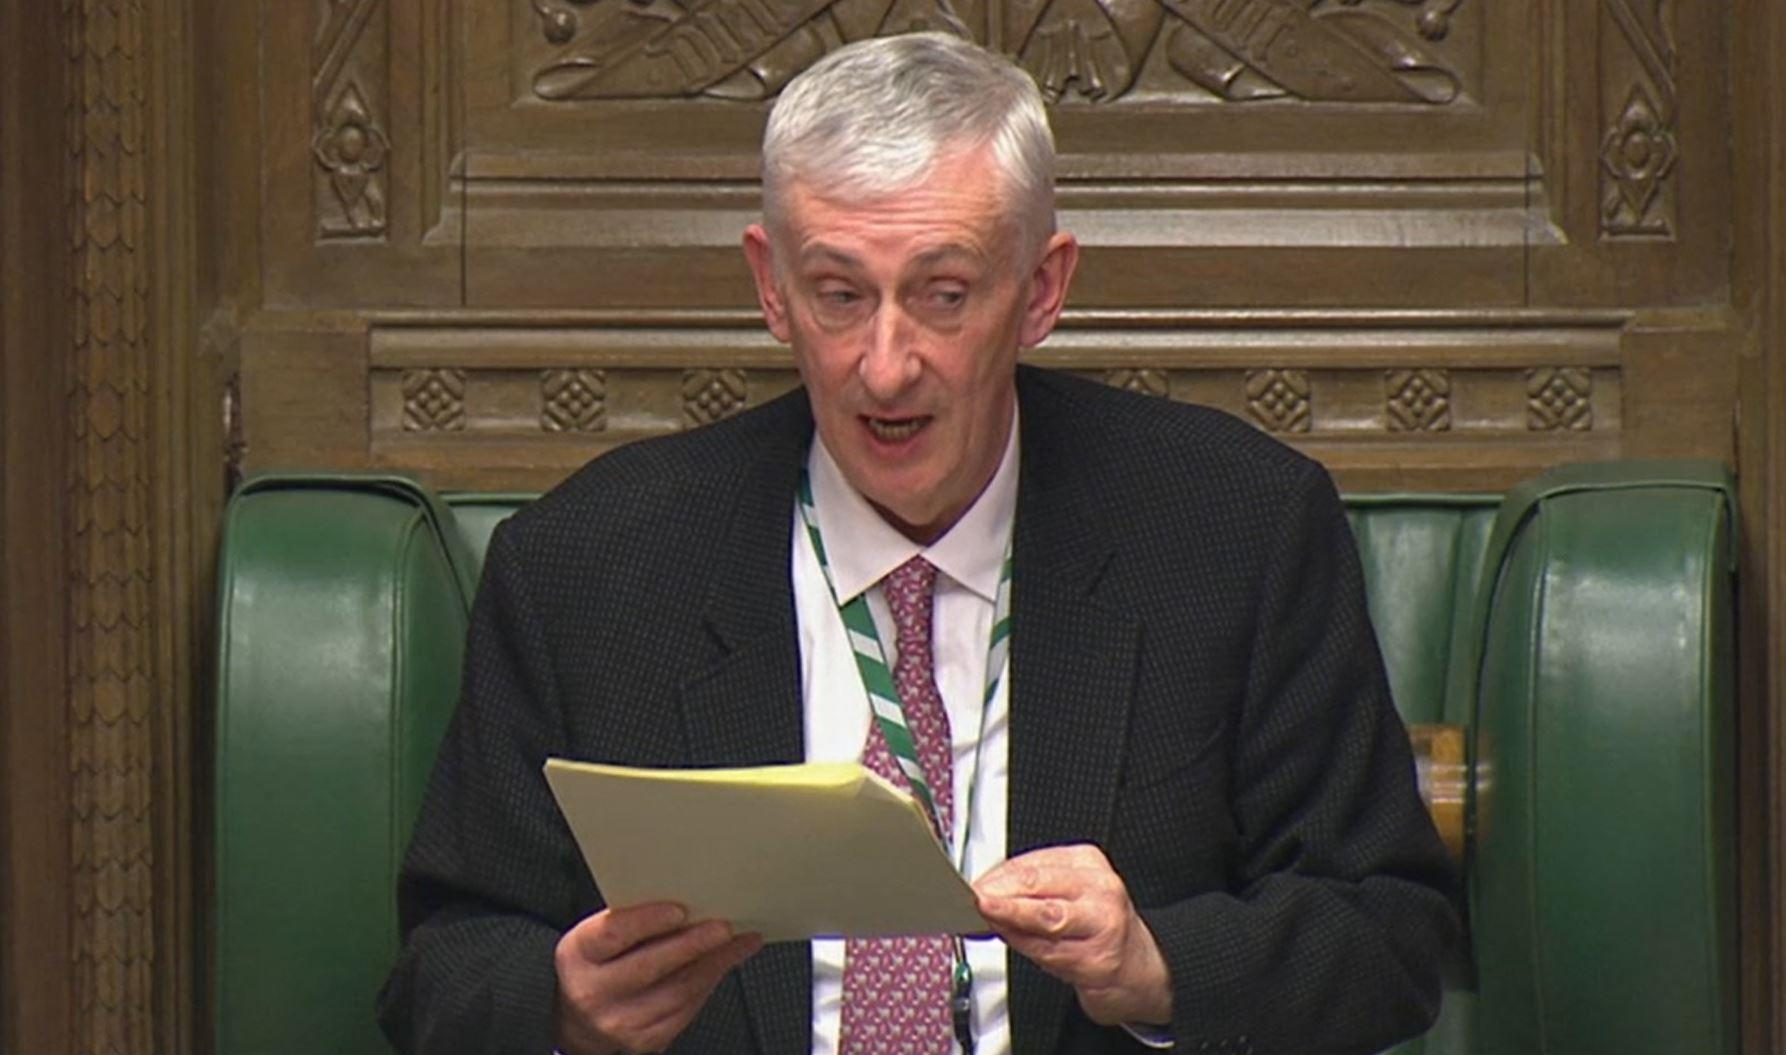 New Speaker of the House Sir Lindsay Hoyle speaks in the House of Commons, London, after the Conservative Party gained an 80-seat majority in the General Election.